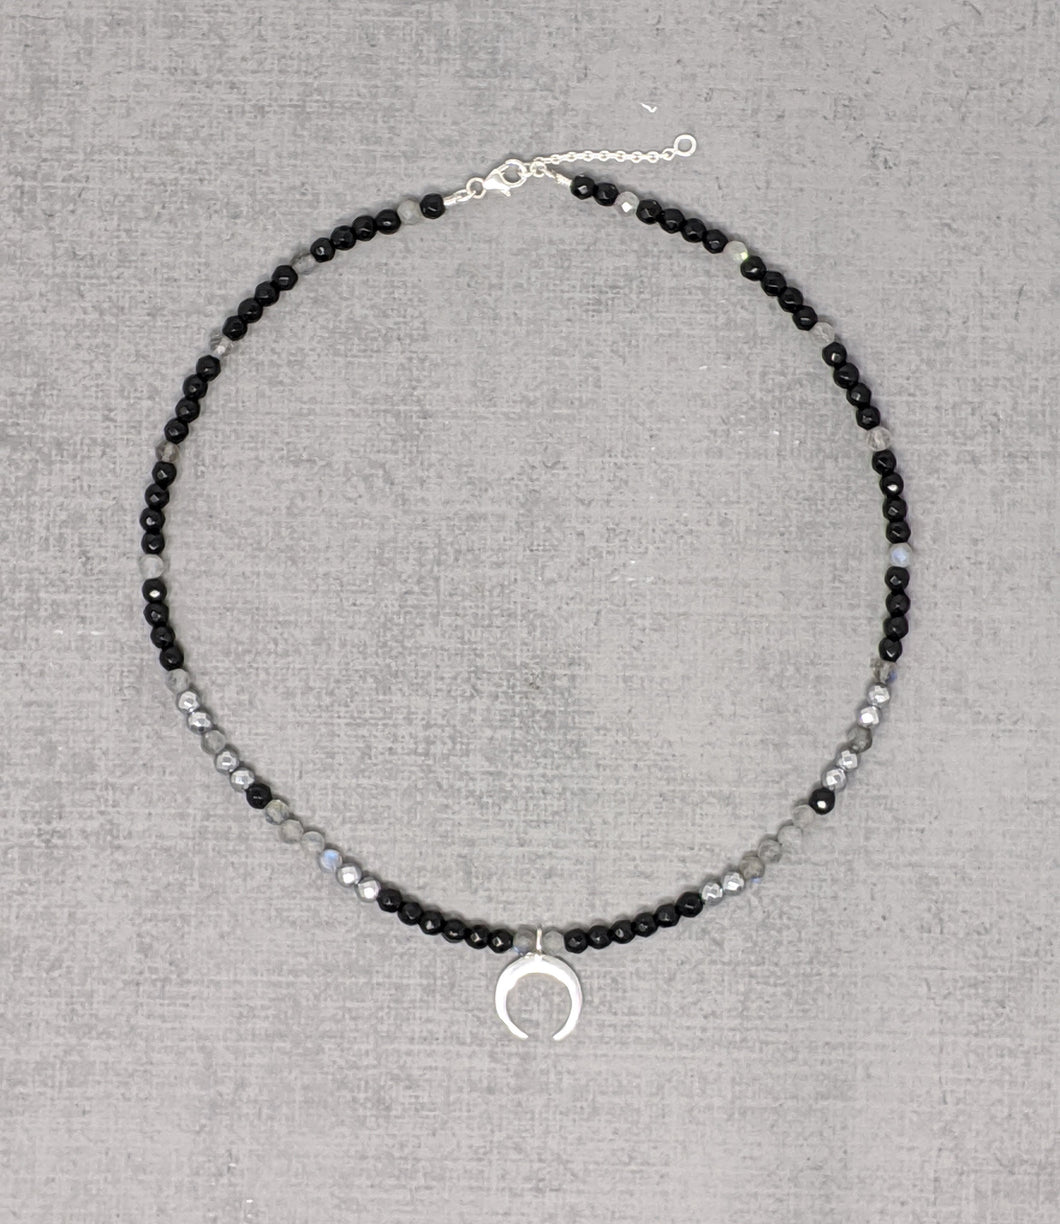 Sterling silver necklace with faceted onyx, labradorite, hematite stones and crescent moon pendant